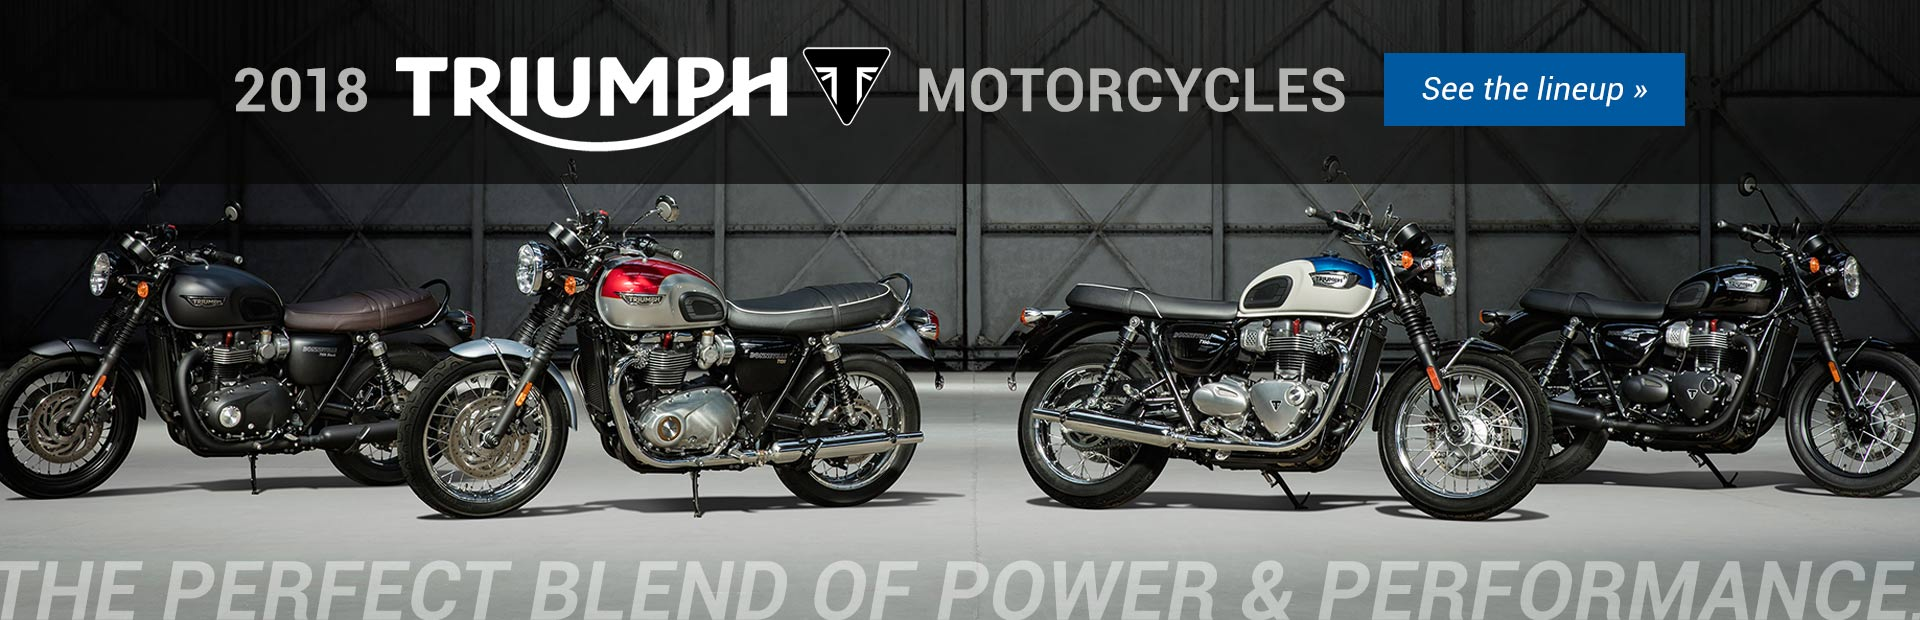 2018 Triumph Motorcycles: Click here to view the lineup.